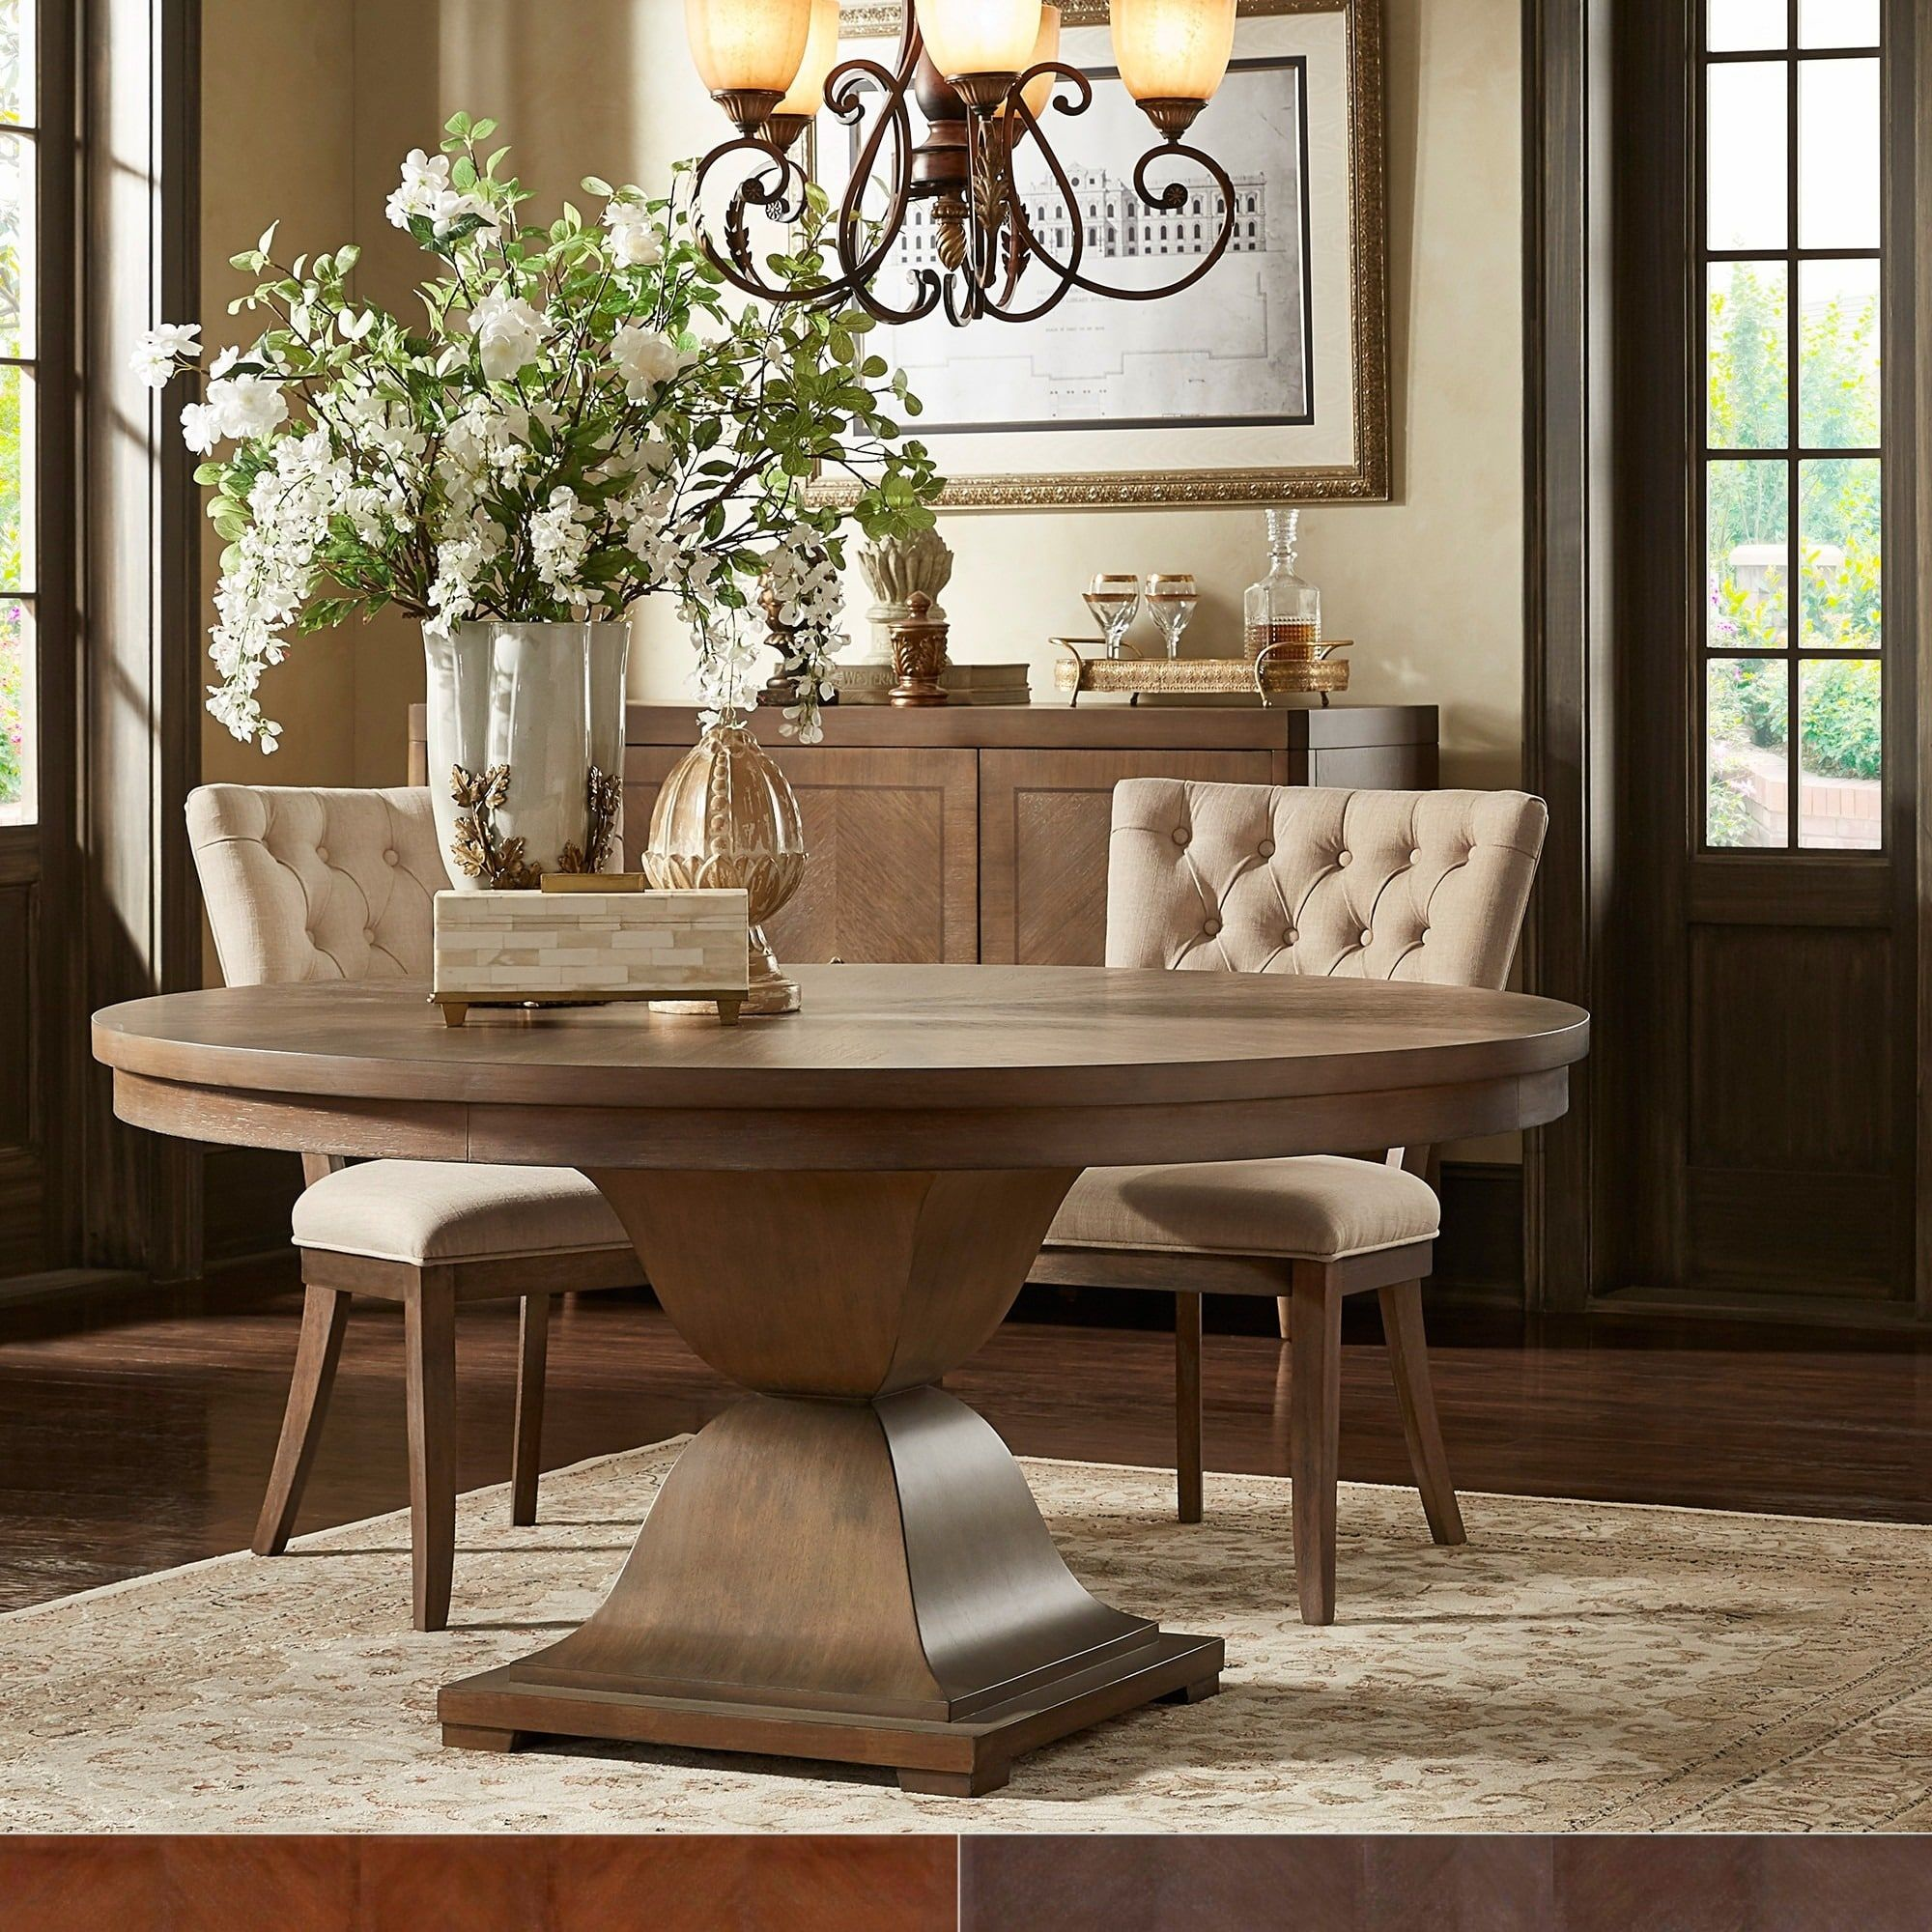 Overstock Com Online Shopping Bedding Furniture Electronics Jewelry Clothing More Round Dining Room Round Dining Room Table 60 Inch Round Dining Table